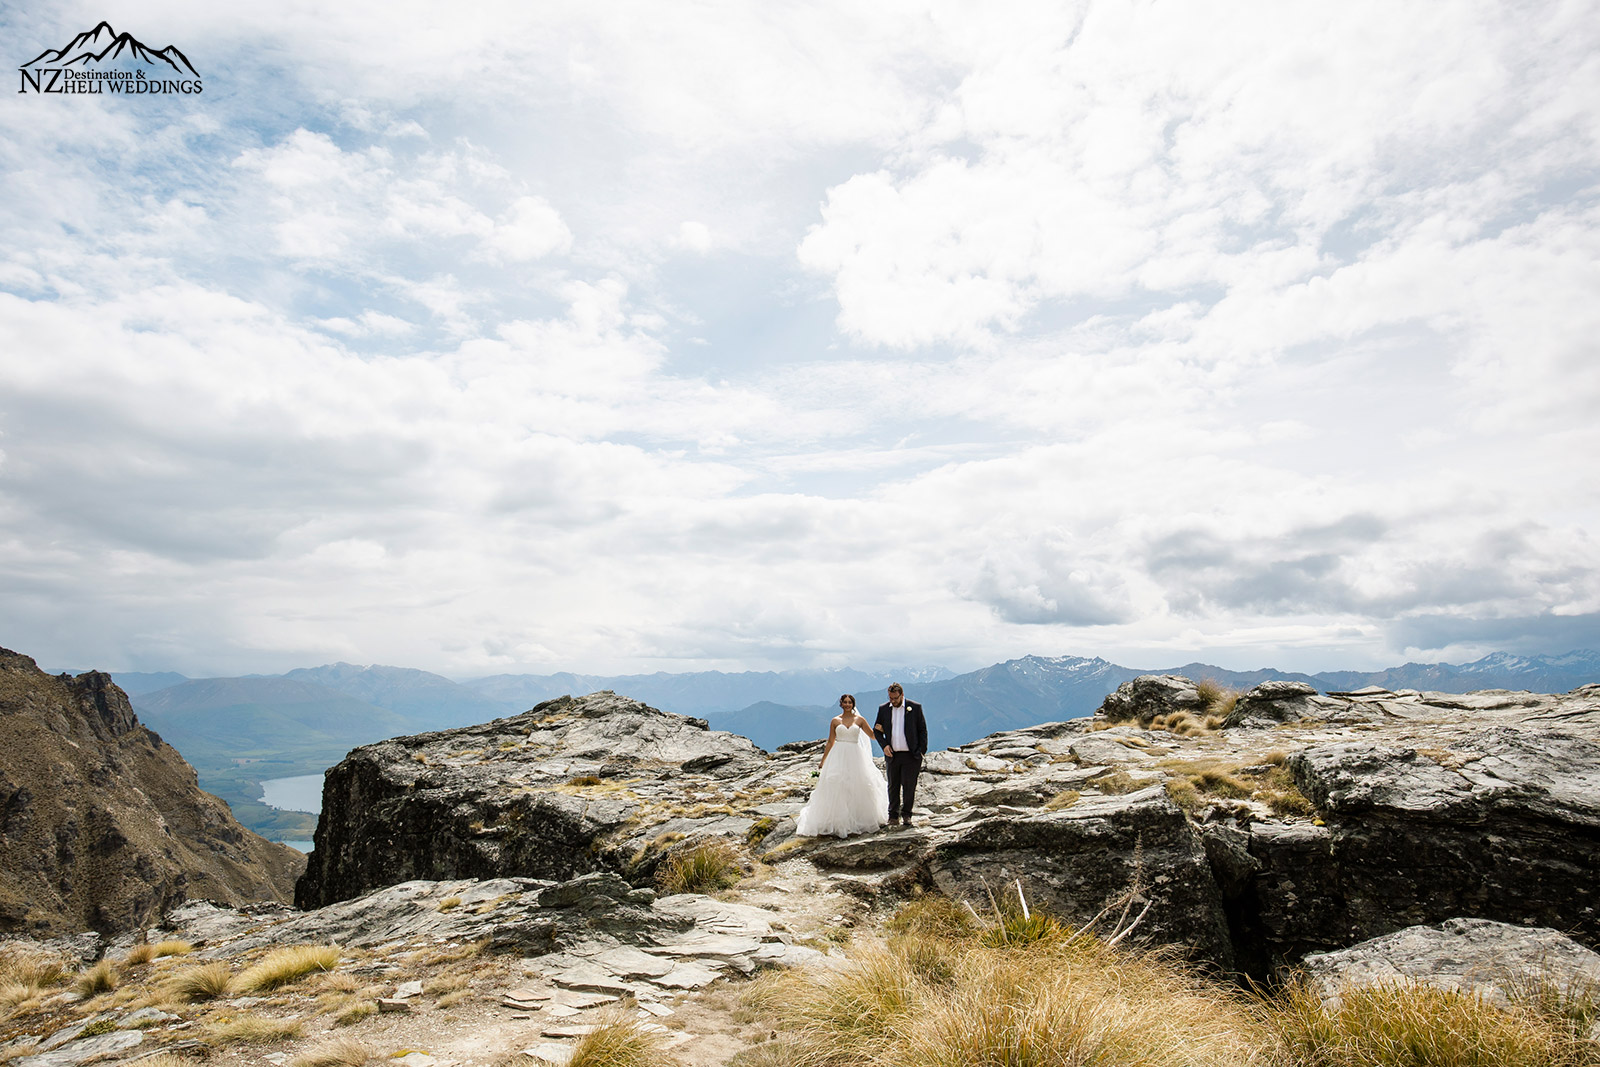 Heli Wedding Photography on The Ledge I'm Queenstown